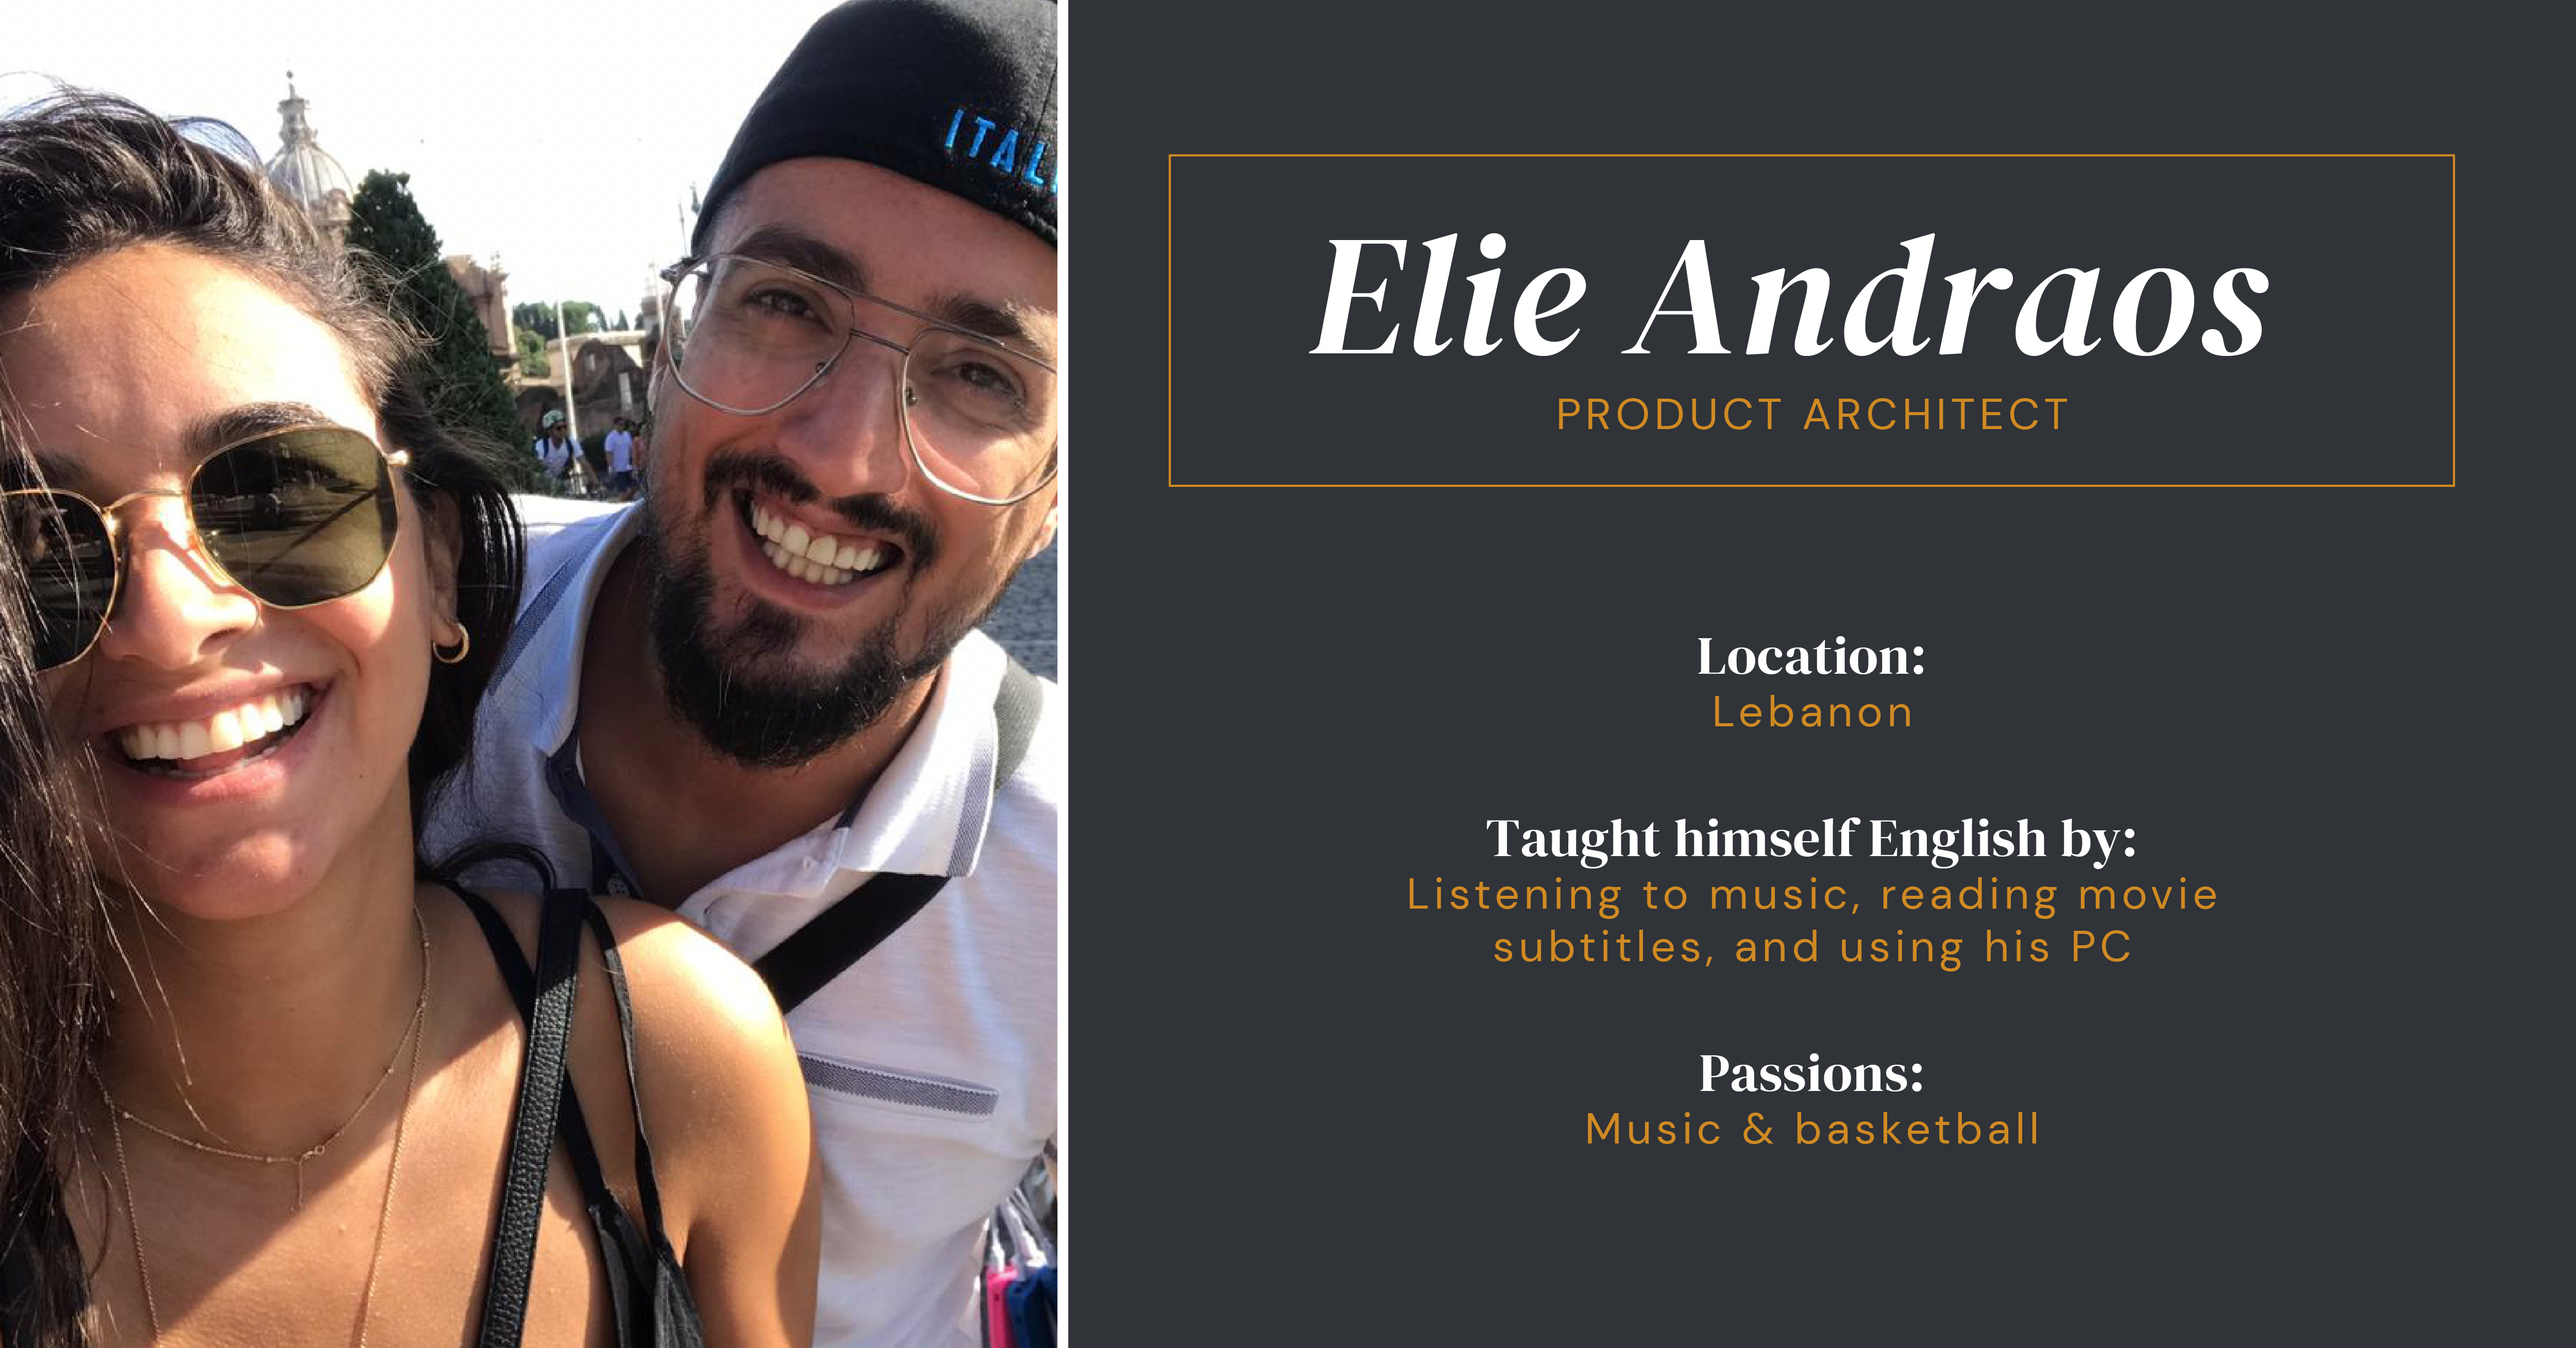 Elie Andraos Product Achitect